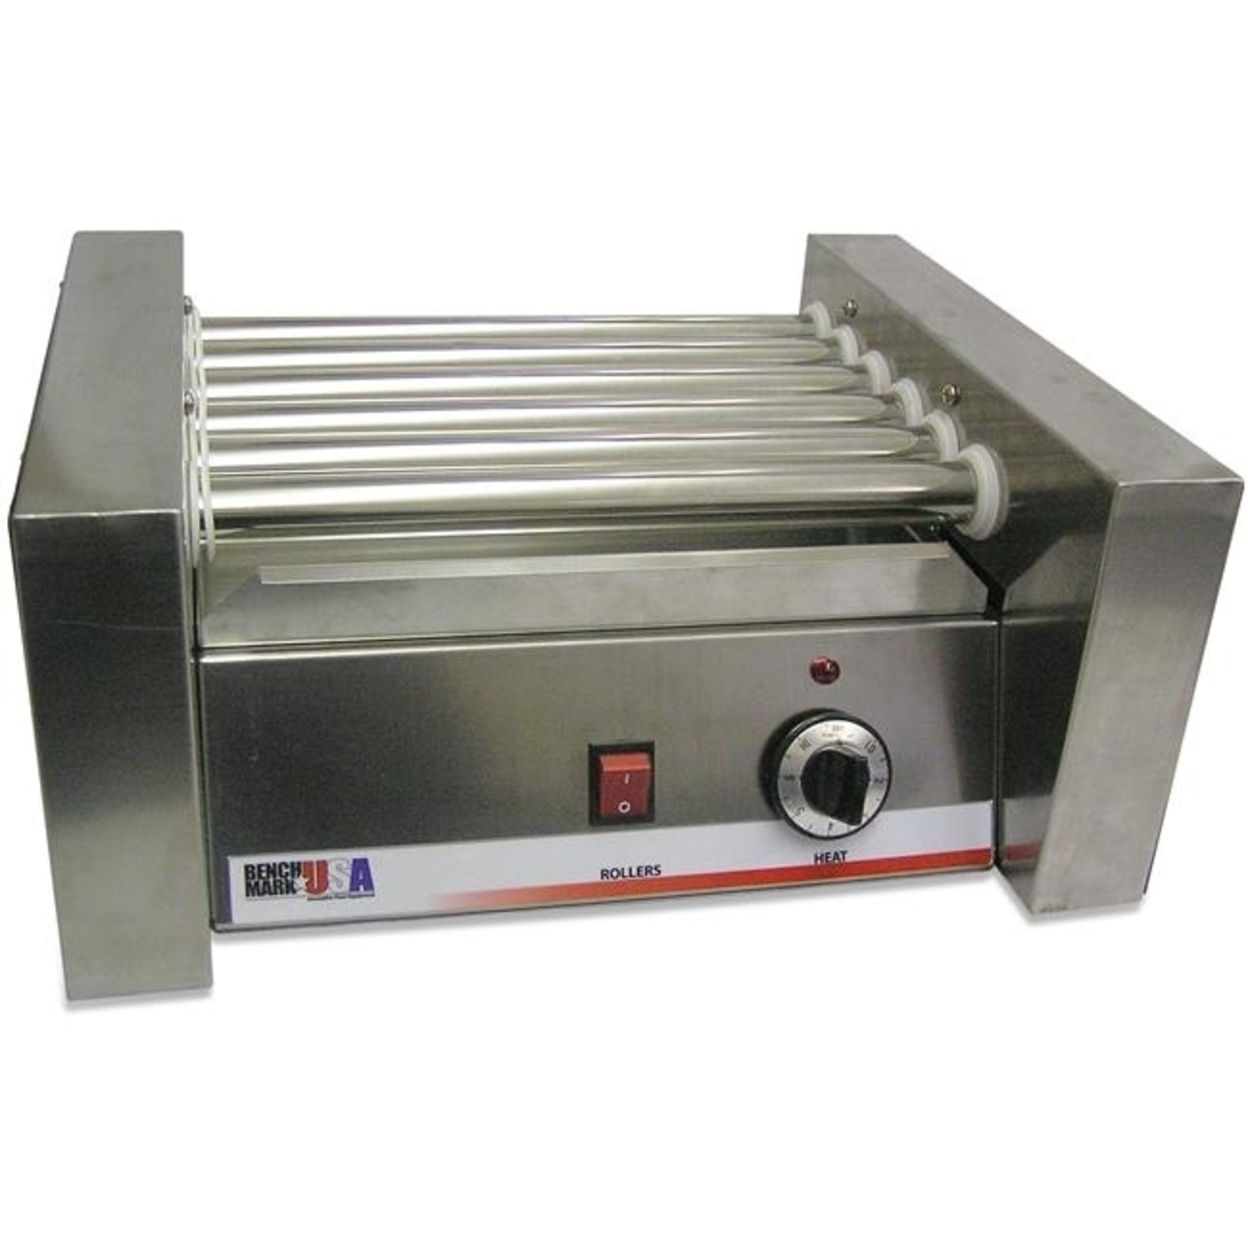 Benchmark USA 62010 10 Dog Roller Grill 5a3bee9be224615ab87bbd52